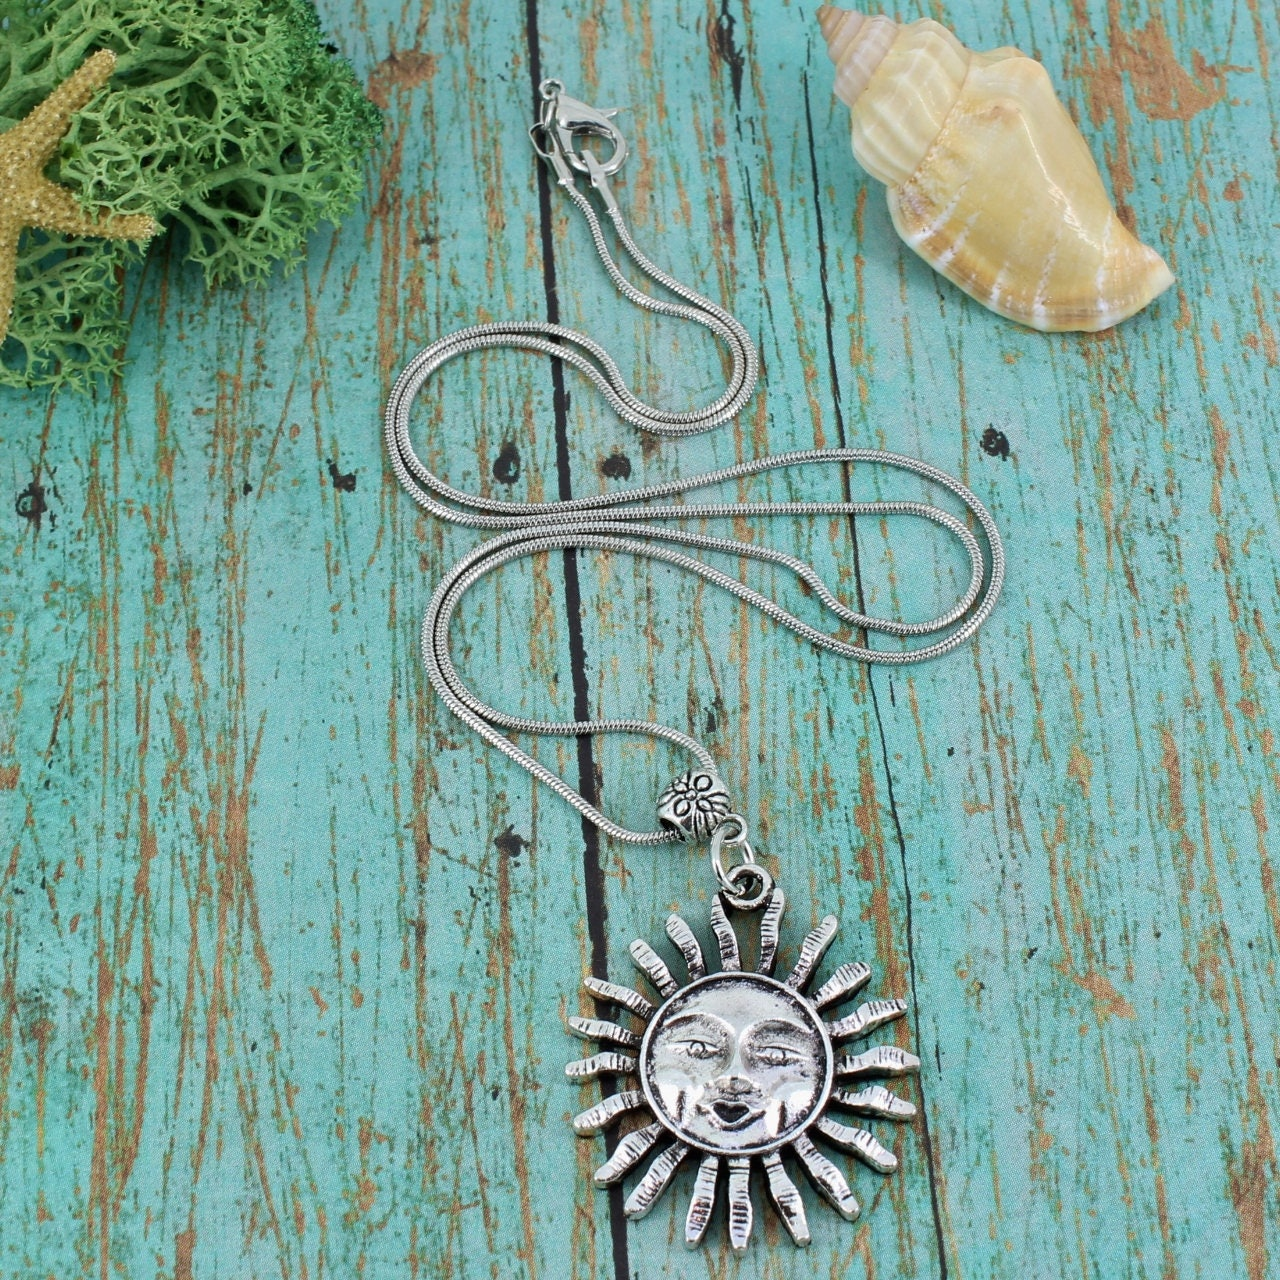 Sun,Necklace,Jewelry,silver_pendant,snake_chain,casual_necklace,unisex_necklace,kid's_necklace,Sun_Necklace,sunburst,sun_with_face,solar_jewelry,sun_and_moon,layering,stacking,chain,sunburst pendant,bail,jump ring